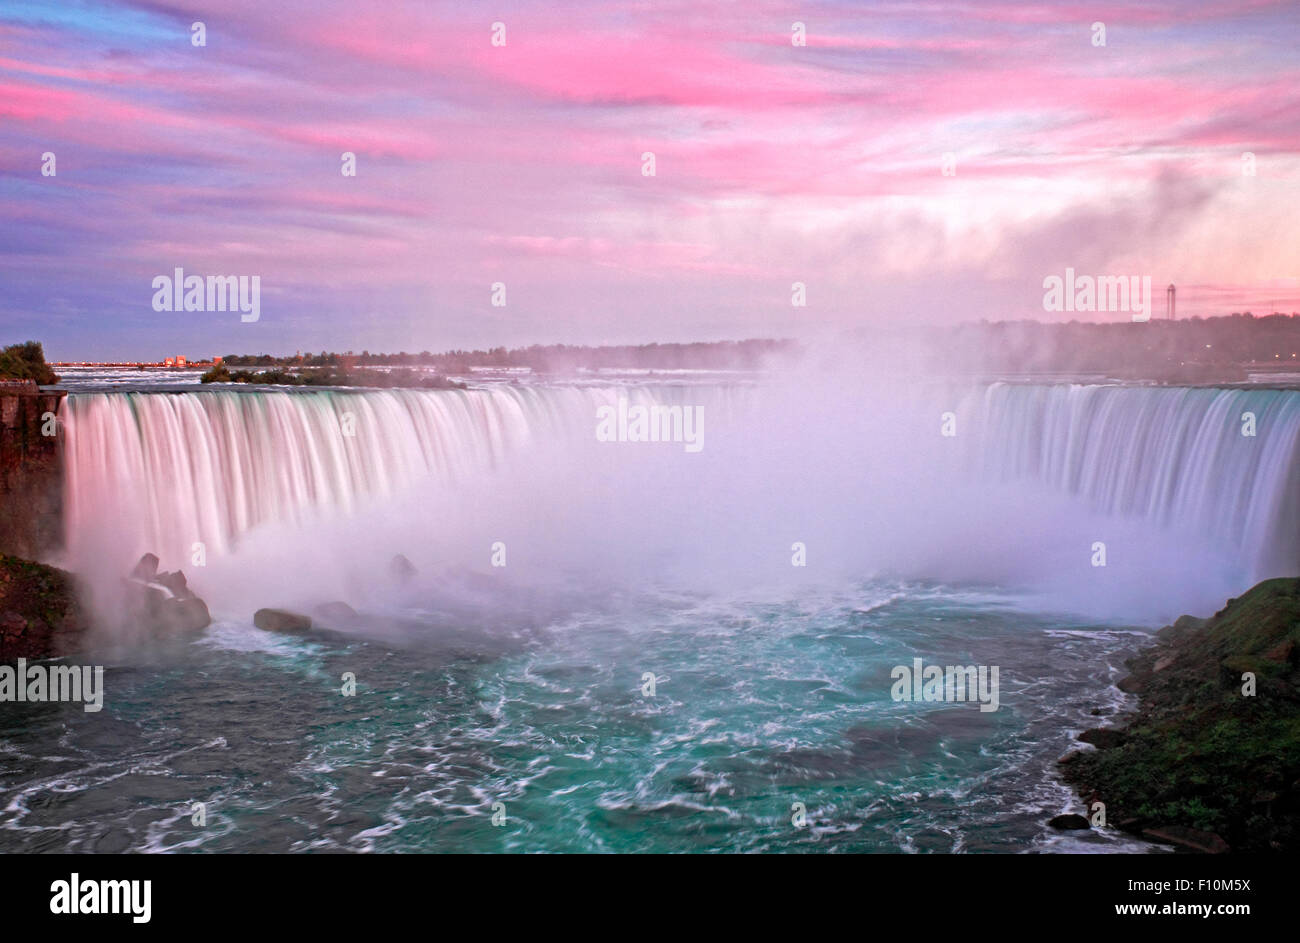 Sunset Clouds over Grand Horseshoe Falls of Niagara Falls at dusk - Stock Image